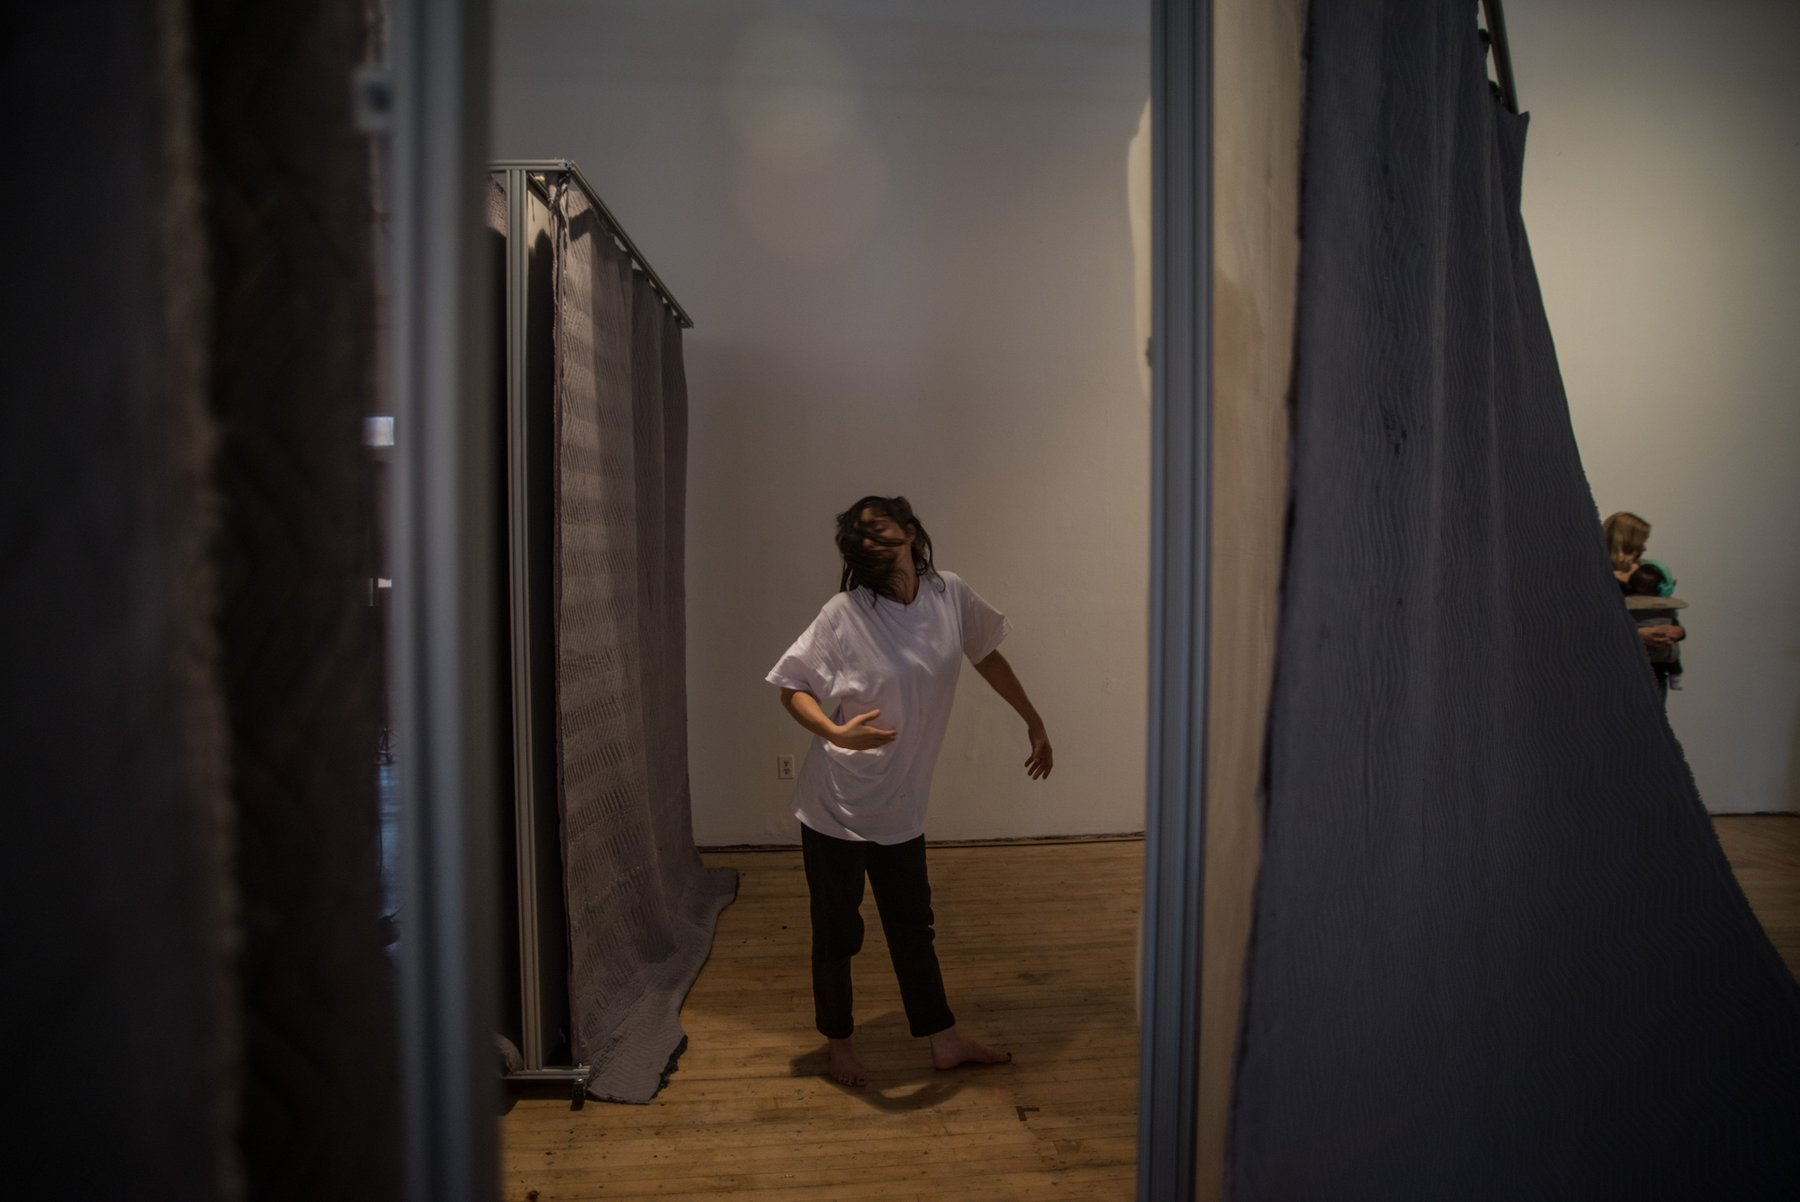 A figure with long hair and white t-shirt runs through a curtained gallery space, Gordon Soundtracks